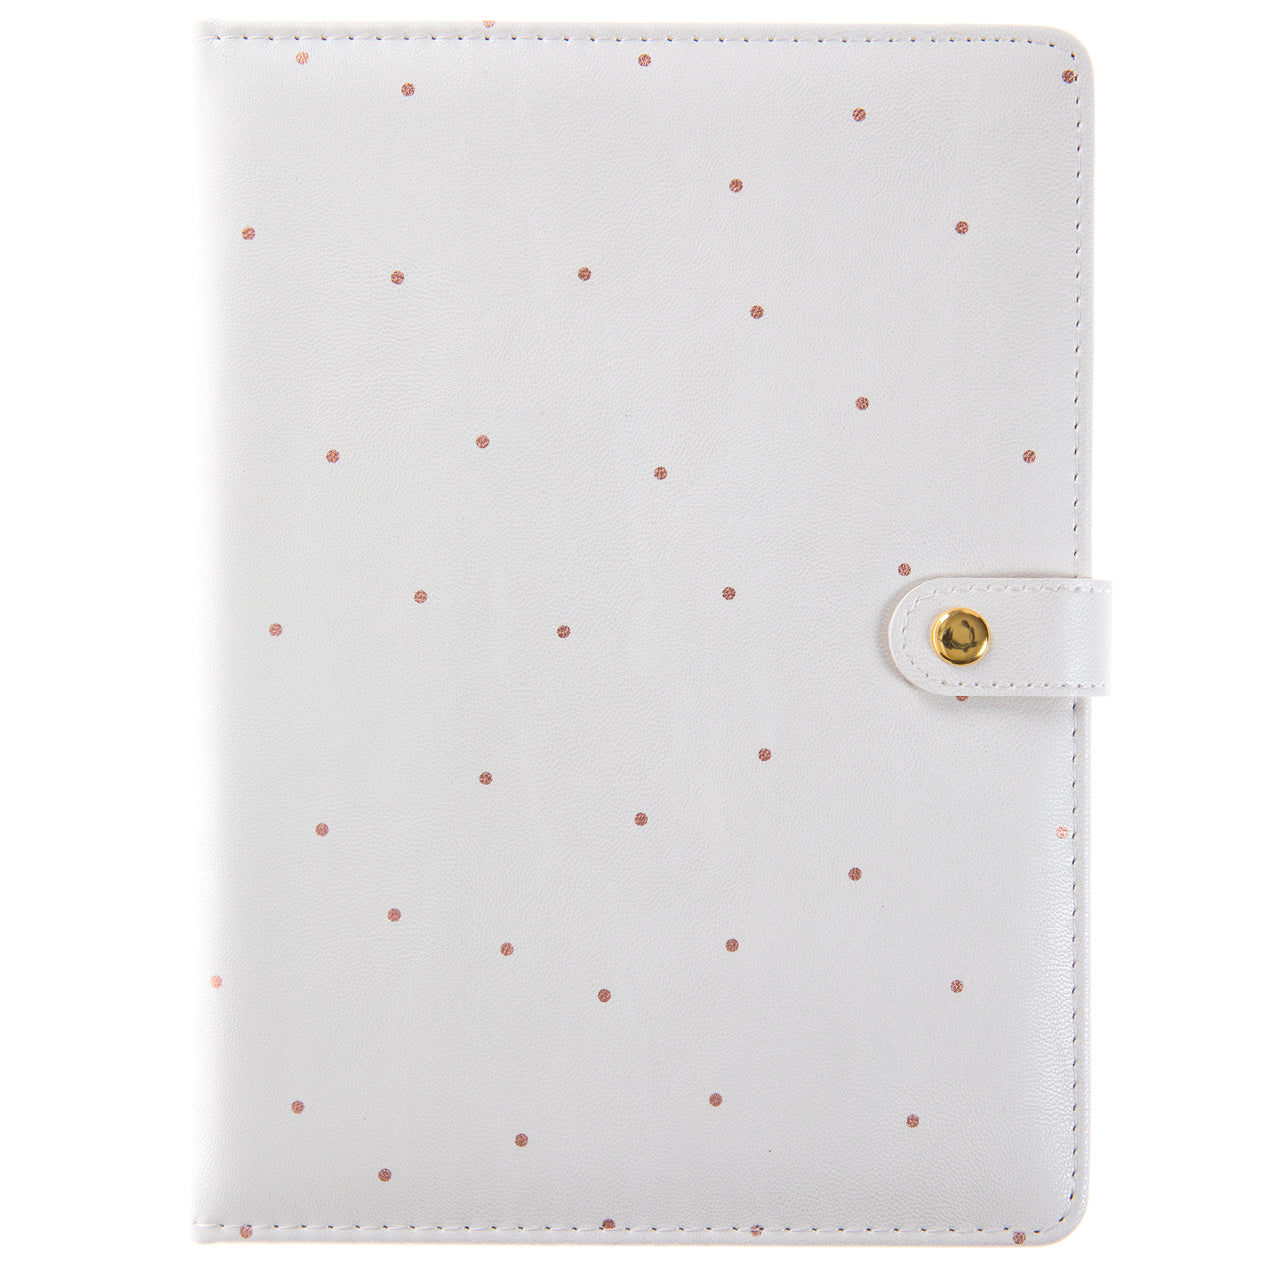 Pearlized Polka Dot 6x8 Snap Journal